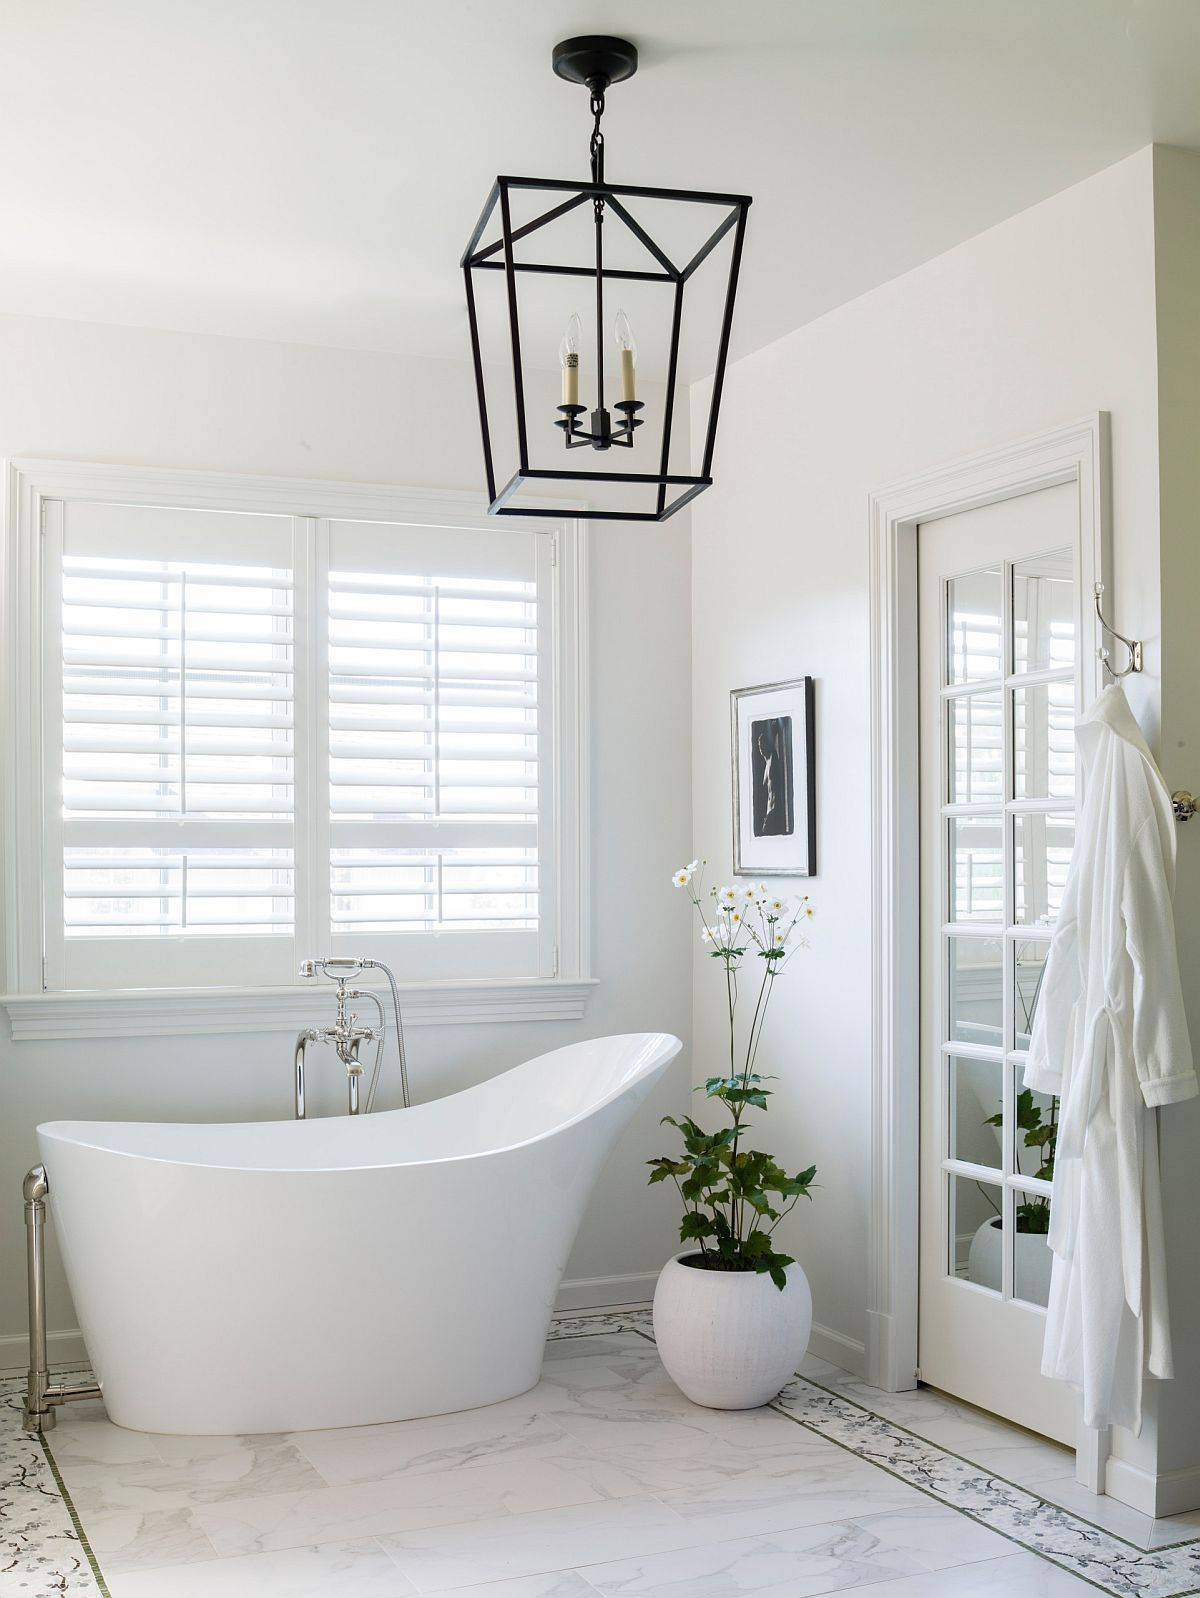 Indoor-plant-and-the-lighting-fixture-bring-a-bit-of-contrast-to-the-white-bathroom-with-marble-floor-55110